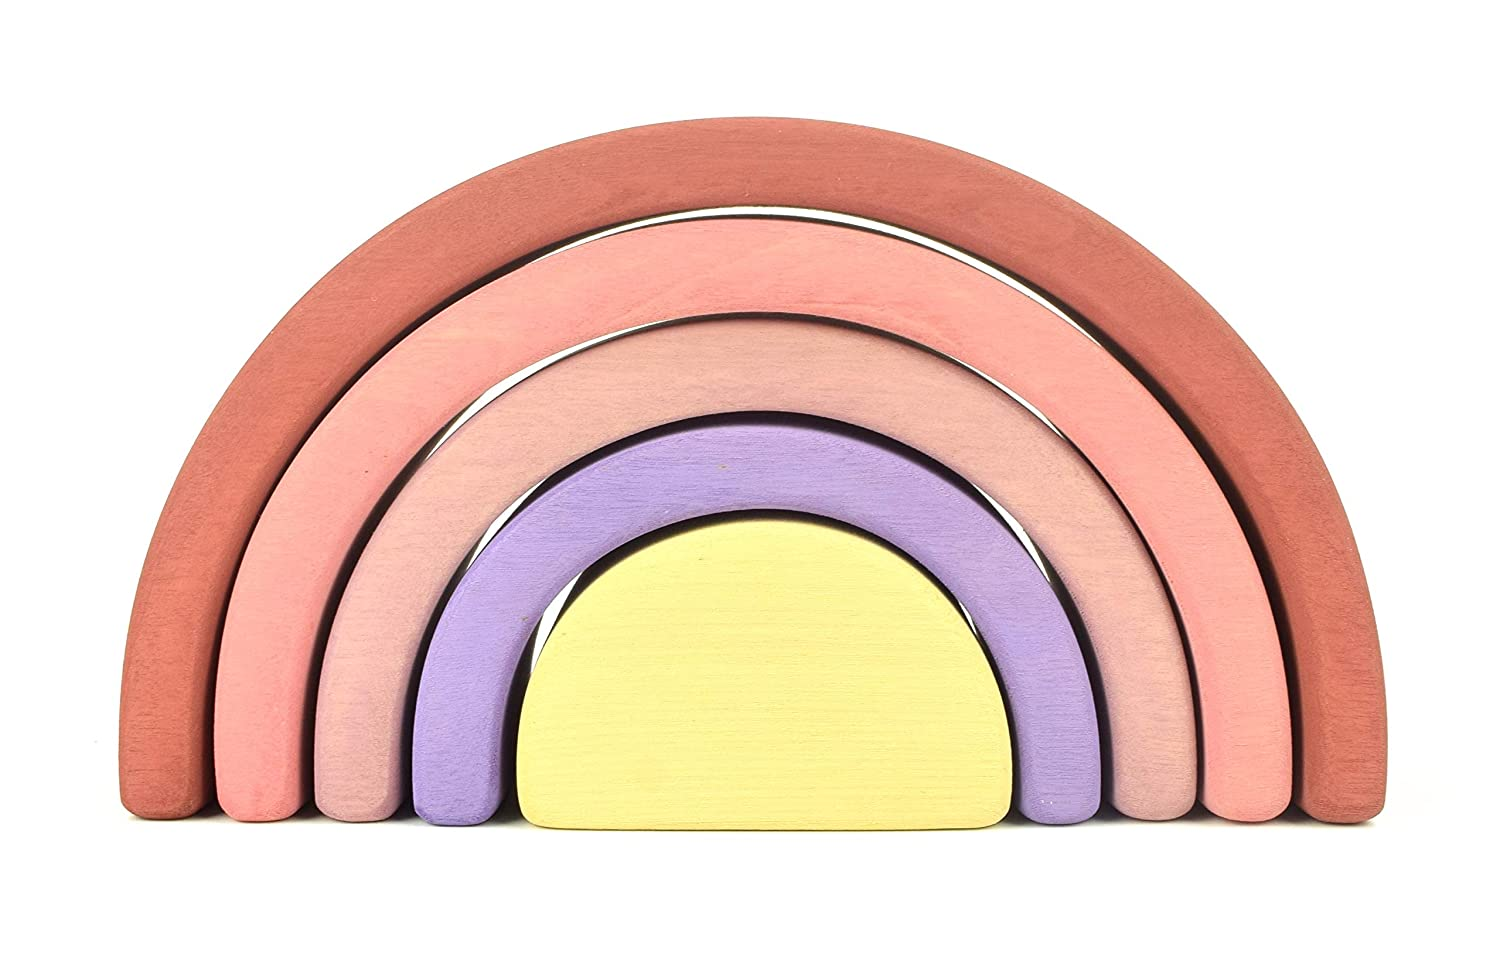 Rainbow Stacker Wooden rainbow stacking toy Building blocks Stacking puzzle Rainbow tunnel Montessori toys Rainbow stacker Waldorf toys for babies Rainbow blocks Sorting Learning 5 pieces Small Pink